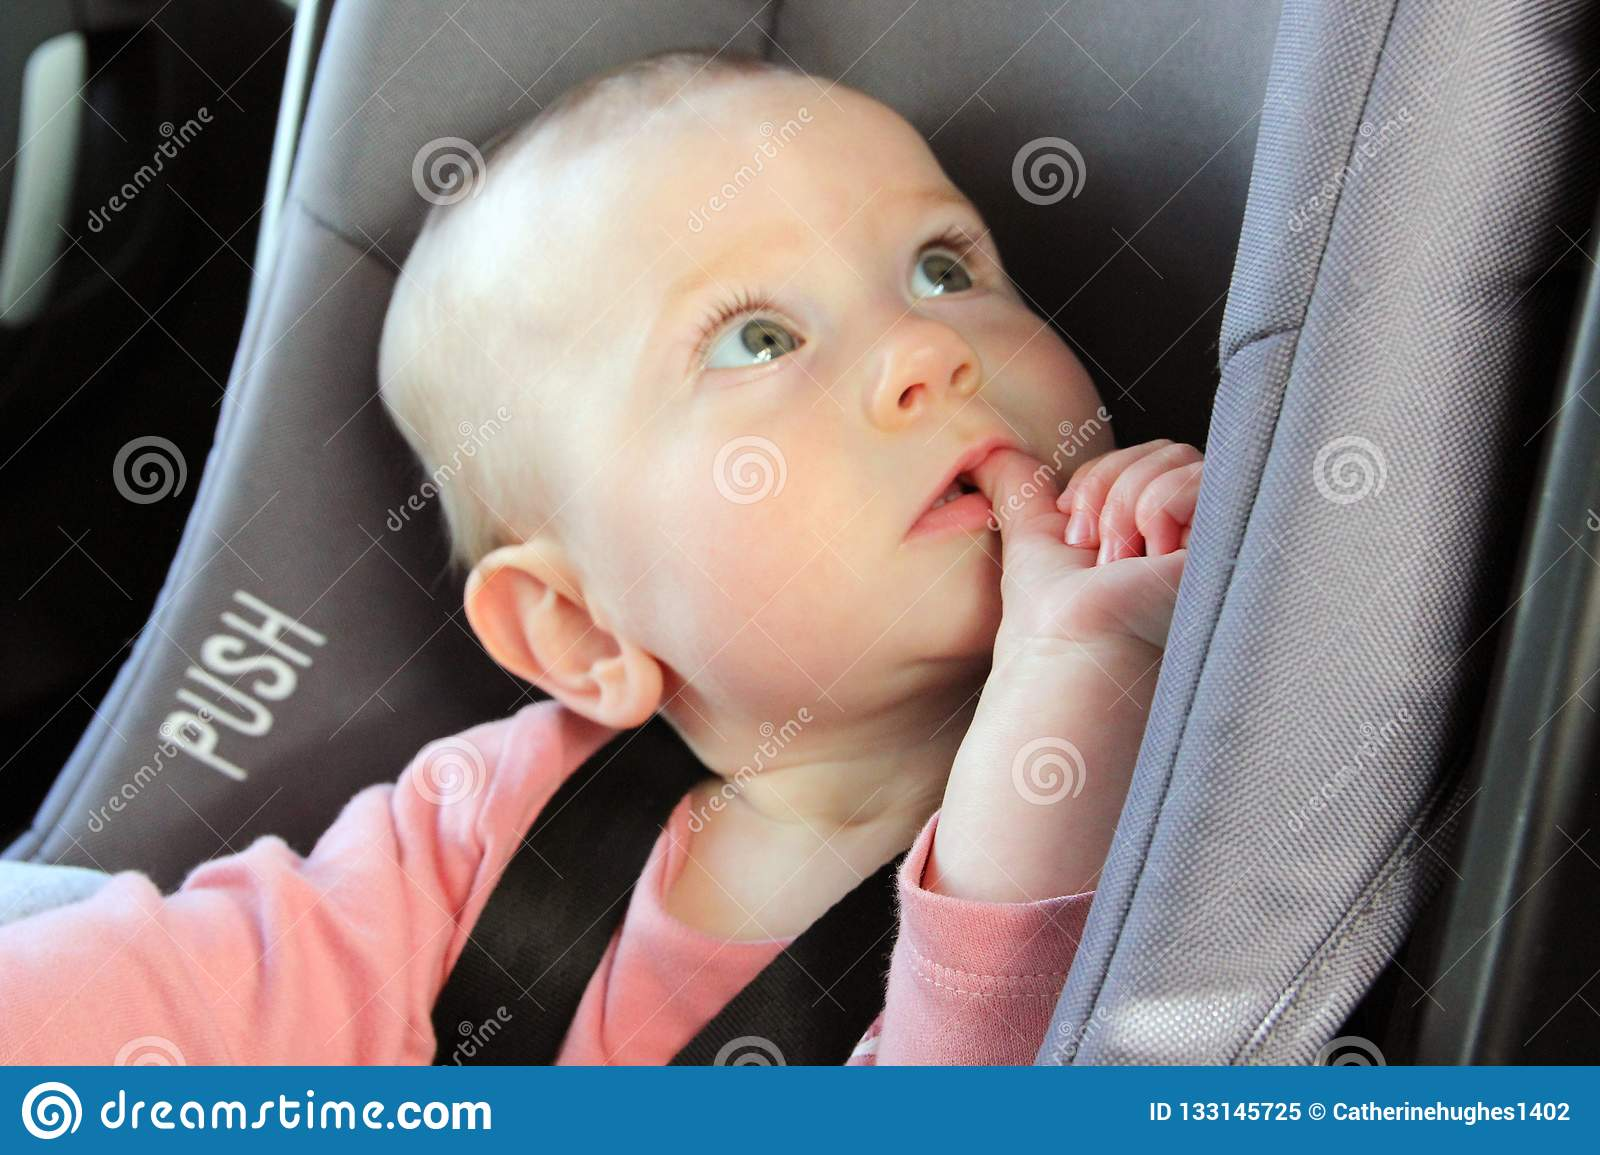 Baby in a car seat looking puzzled